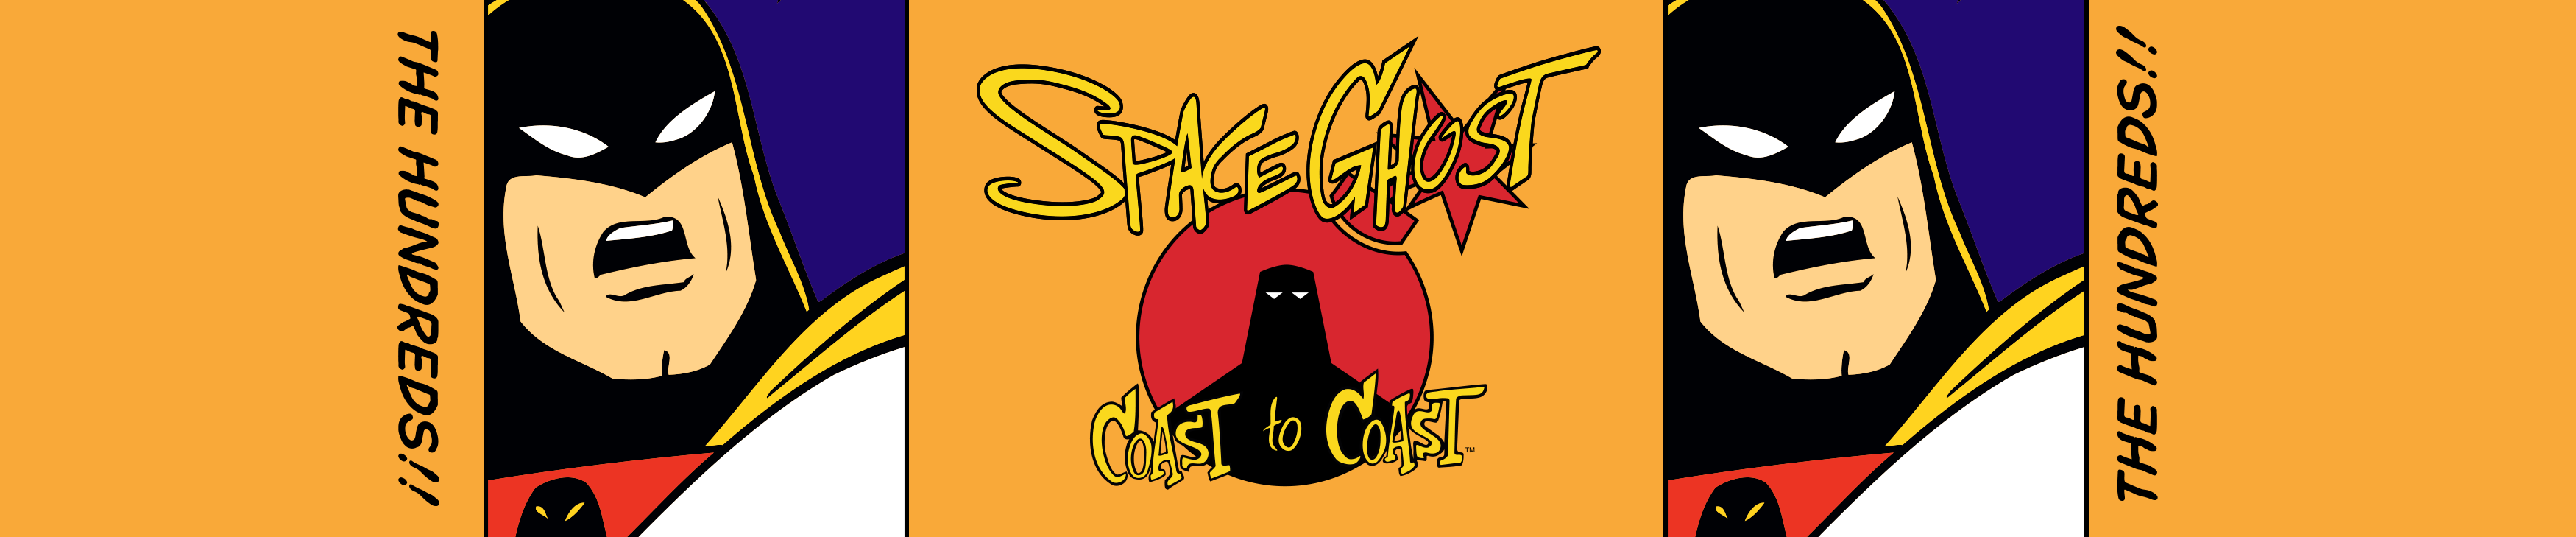 The Hundreds X Space Ghost Coast to Coast